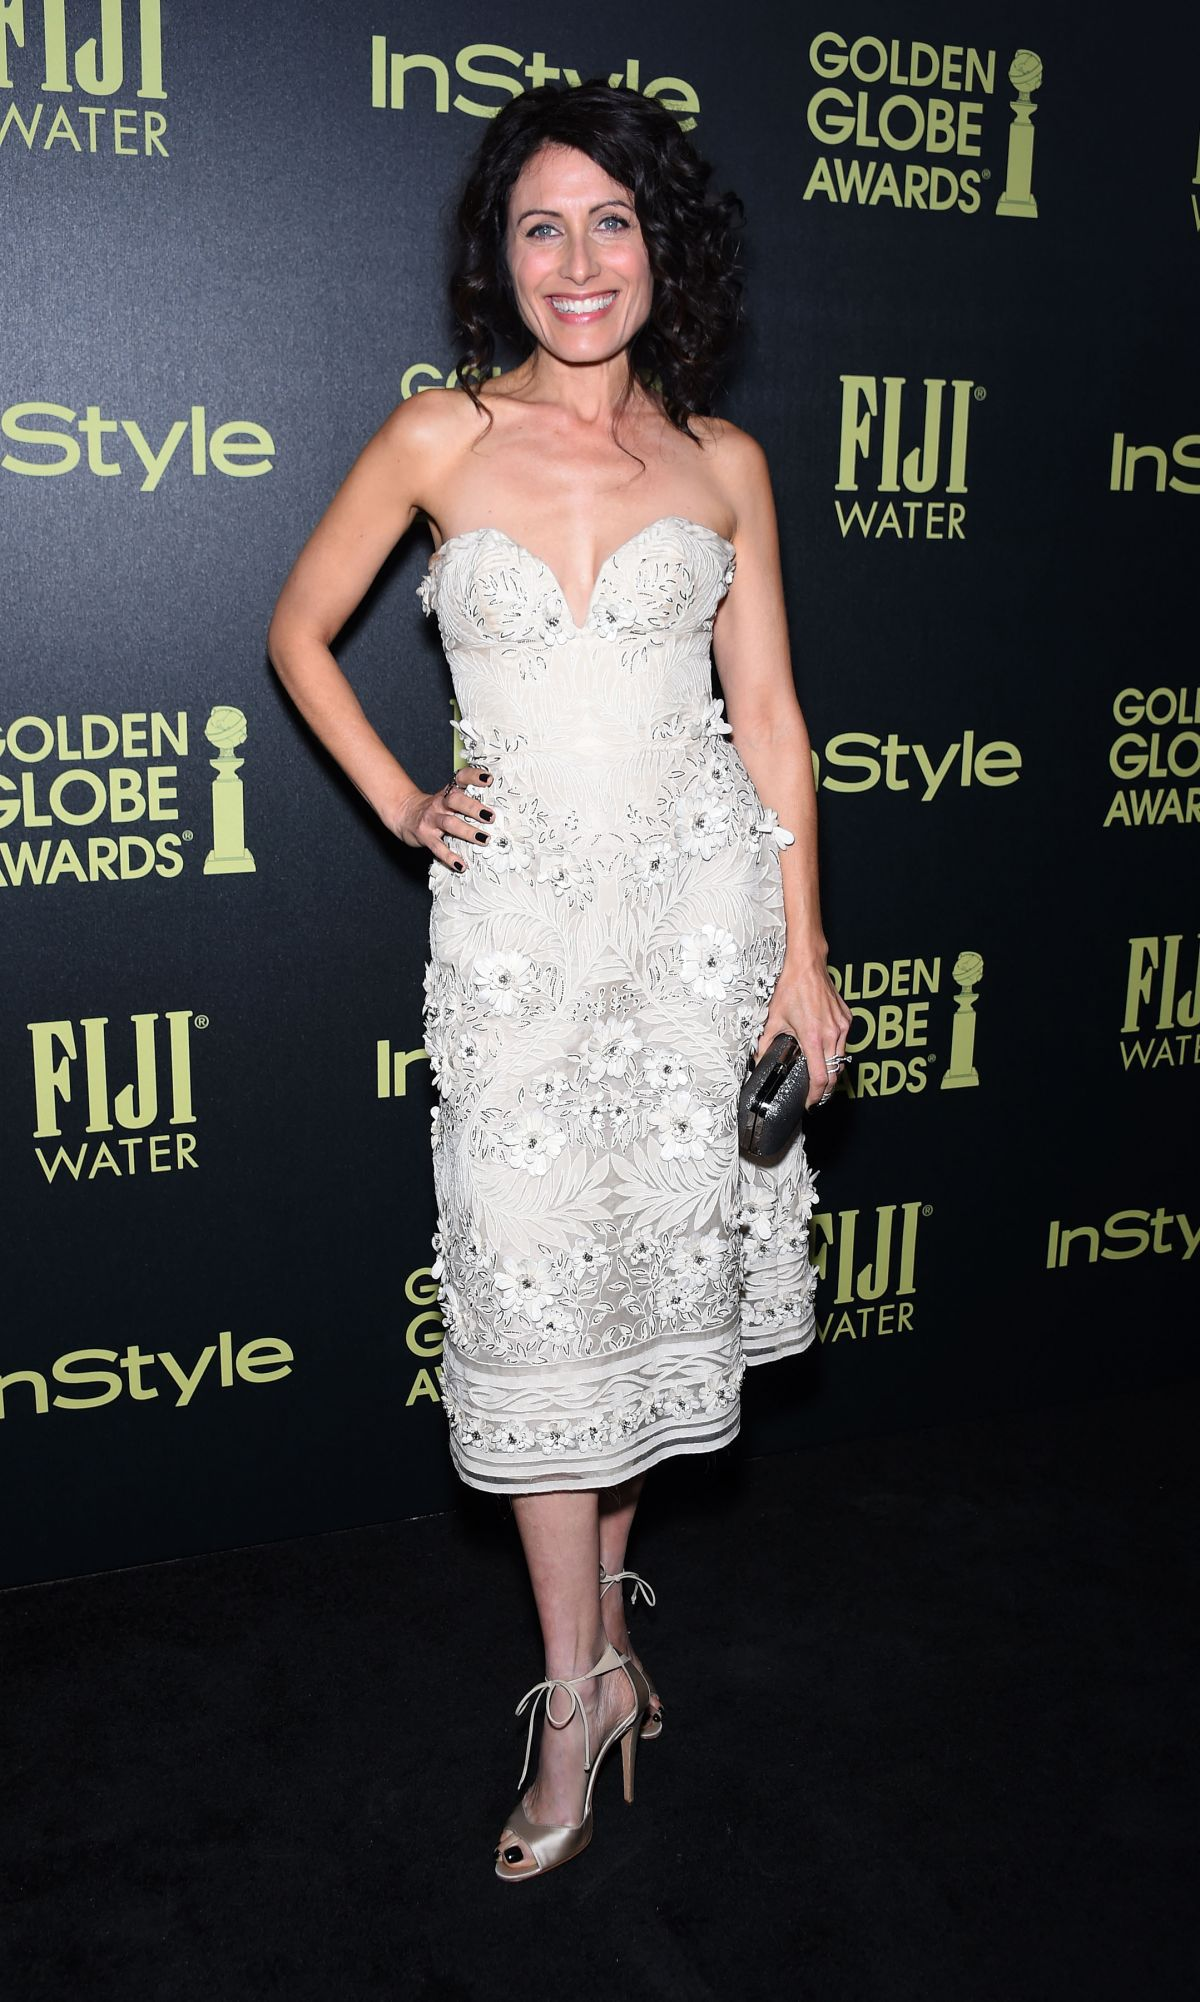 LISA EDELSTEIN at hfpa and Instyle Celebrate 2016 Golden Globe Award Season in West Hollywood 11/17/2015